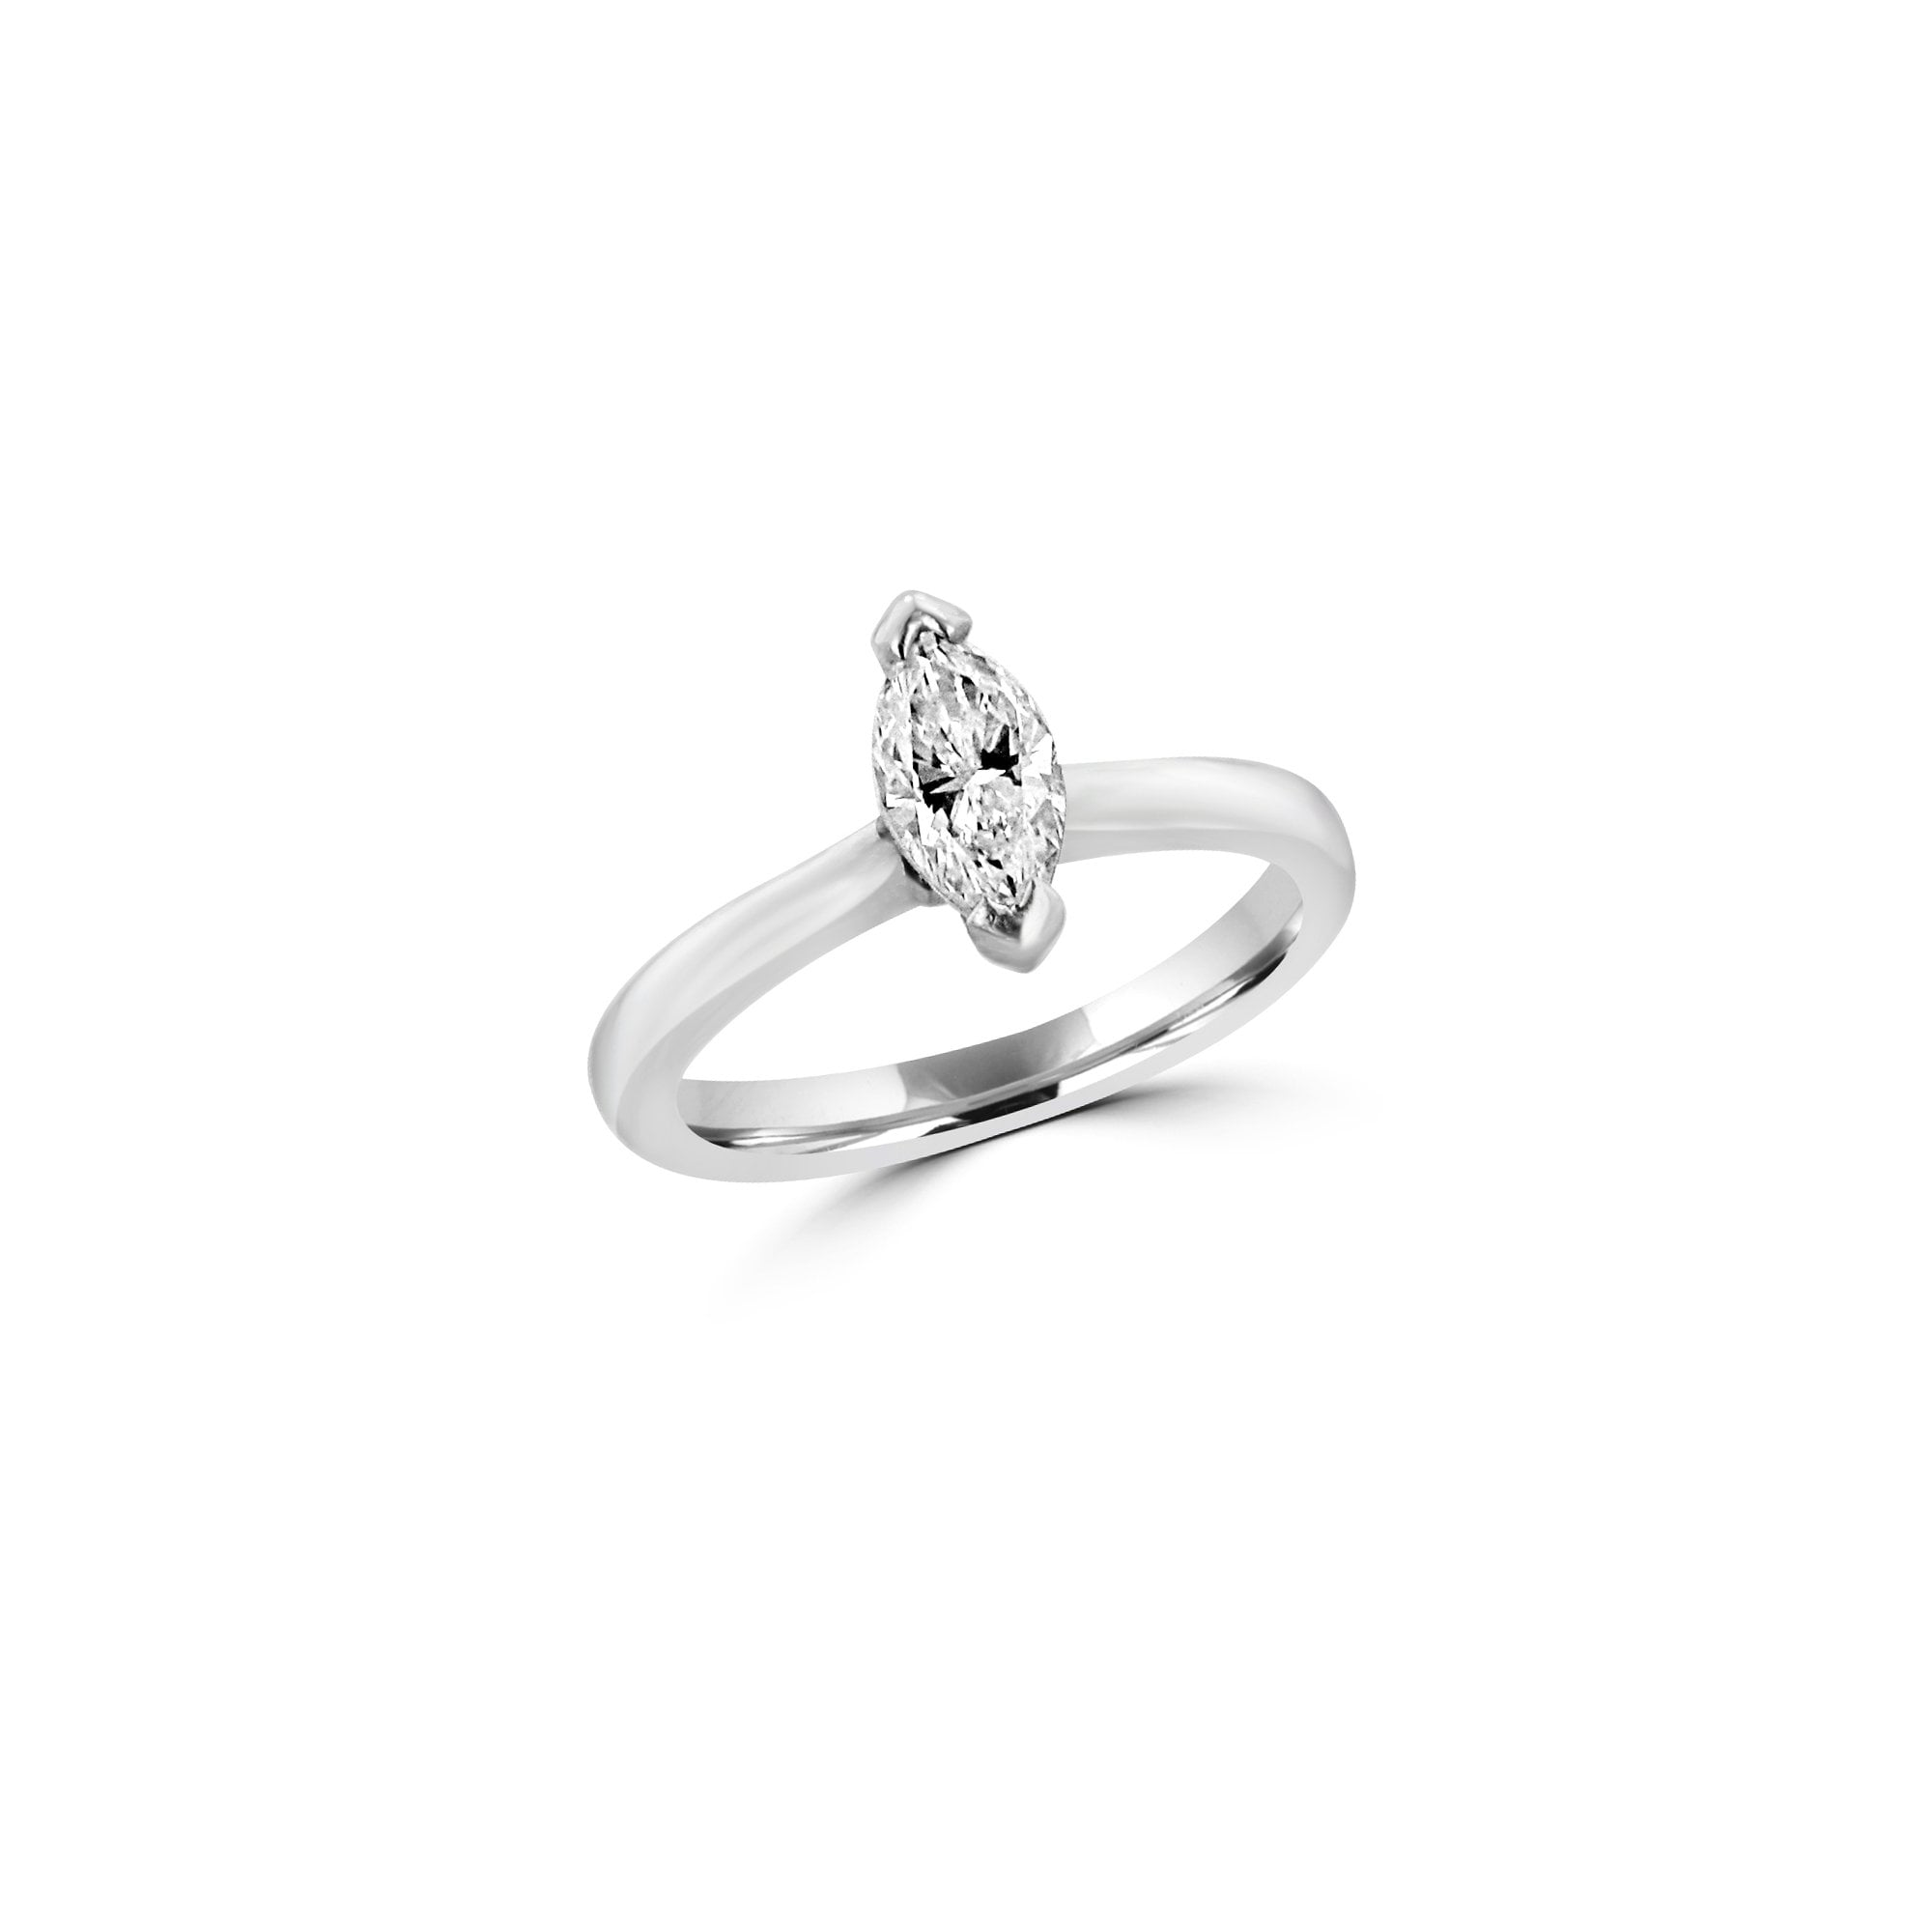 Pre Owned Half Carat Marquise Diamond Solitaire Engagement Ring Womens From Avanti Of Ashbourne Ltd Uk